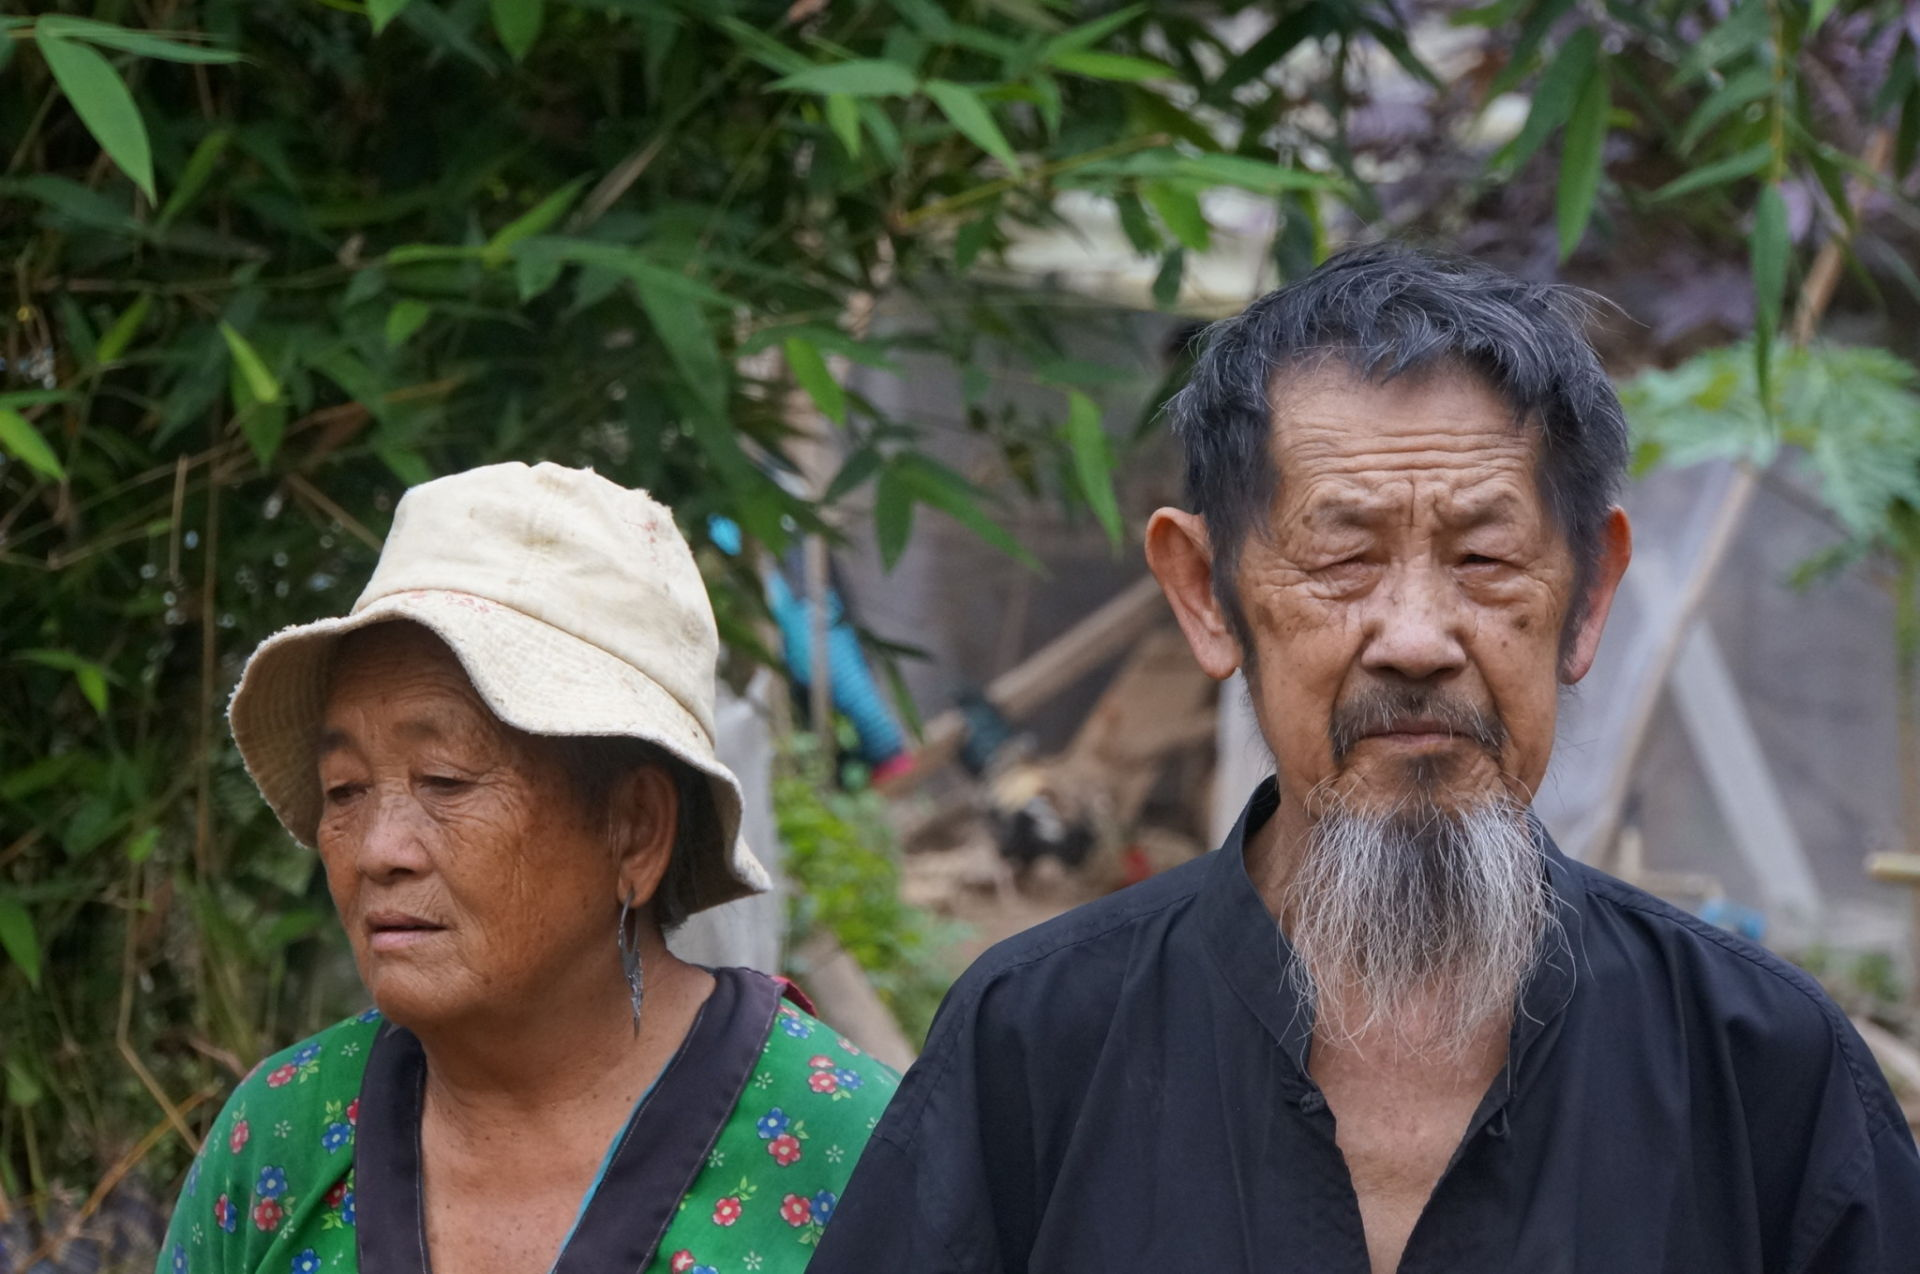 This very old couple works very hard on a farm every day for very little money... We do whatever we can to make their final years a little better for them (Son La Province, Northern Vietnam).